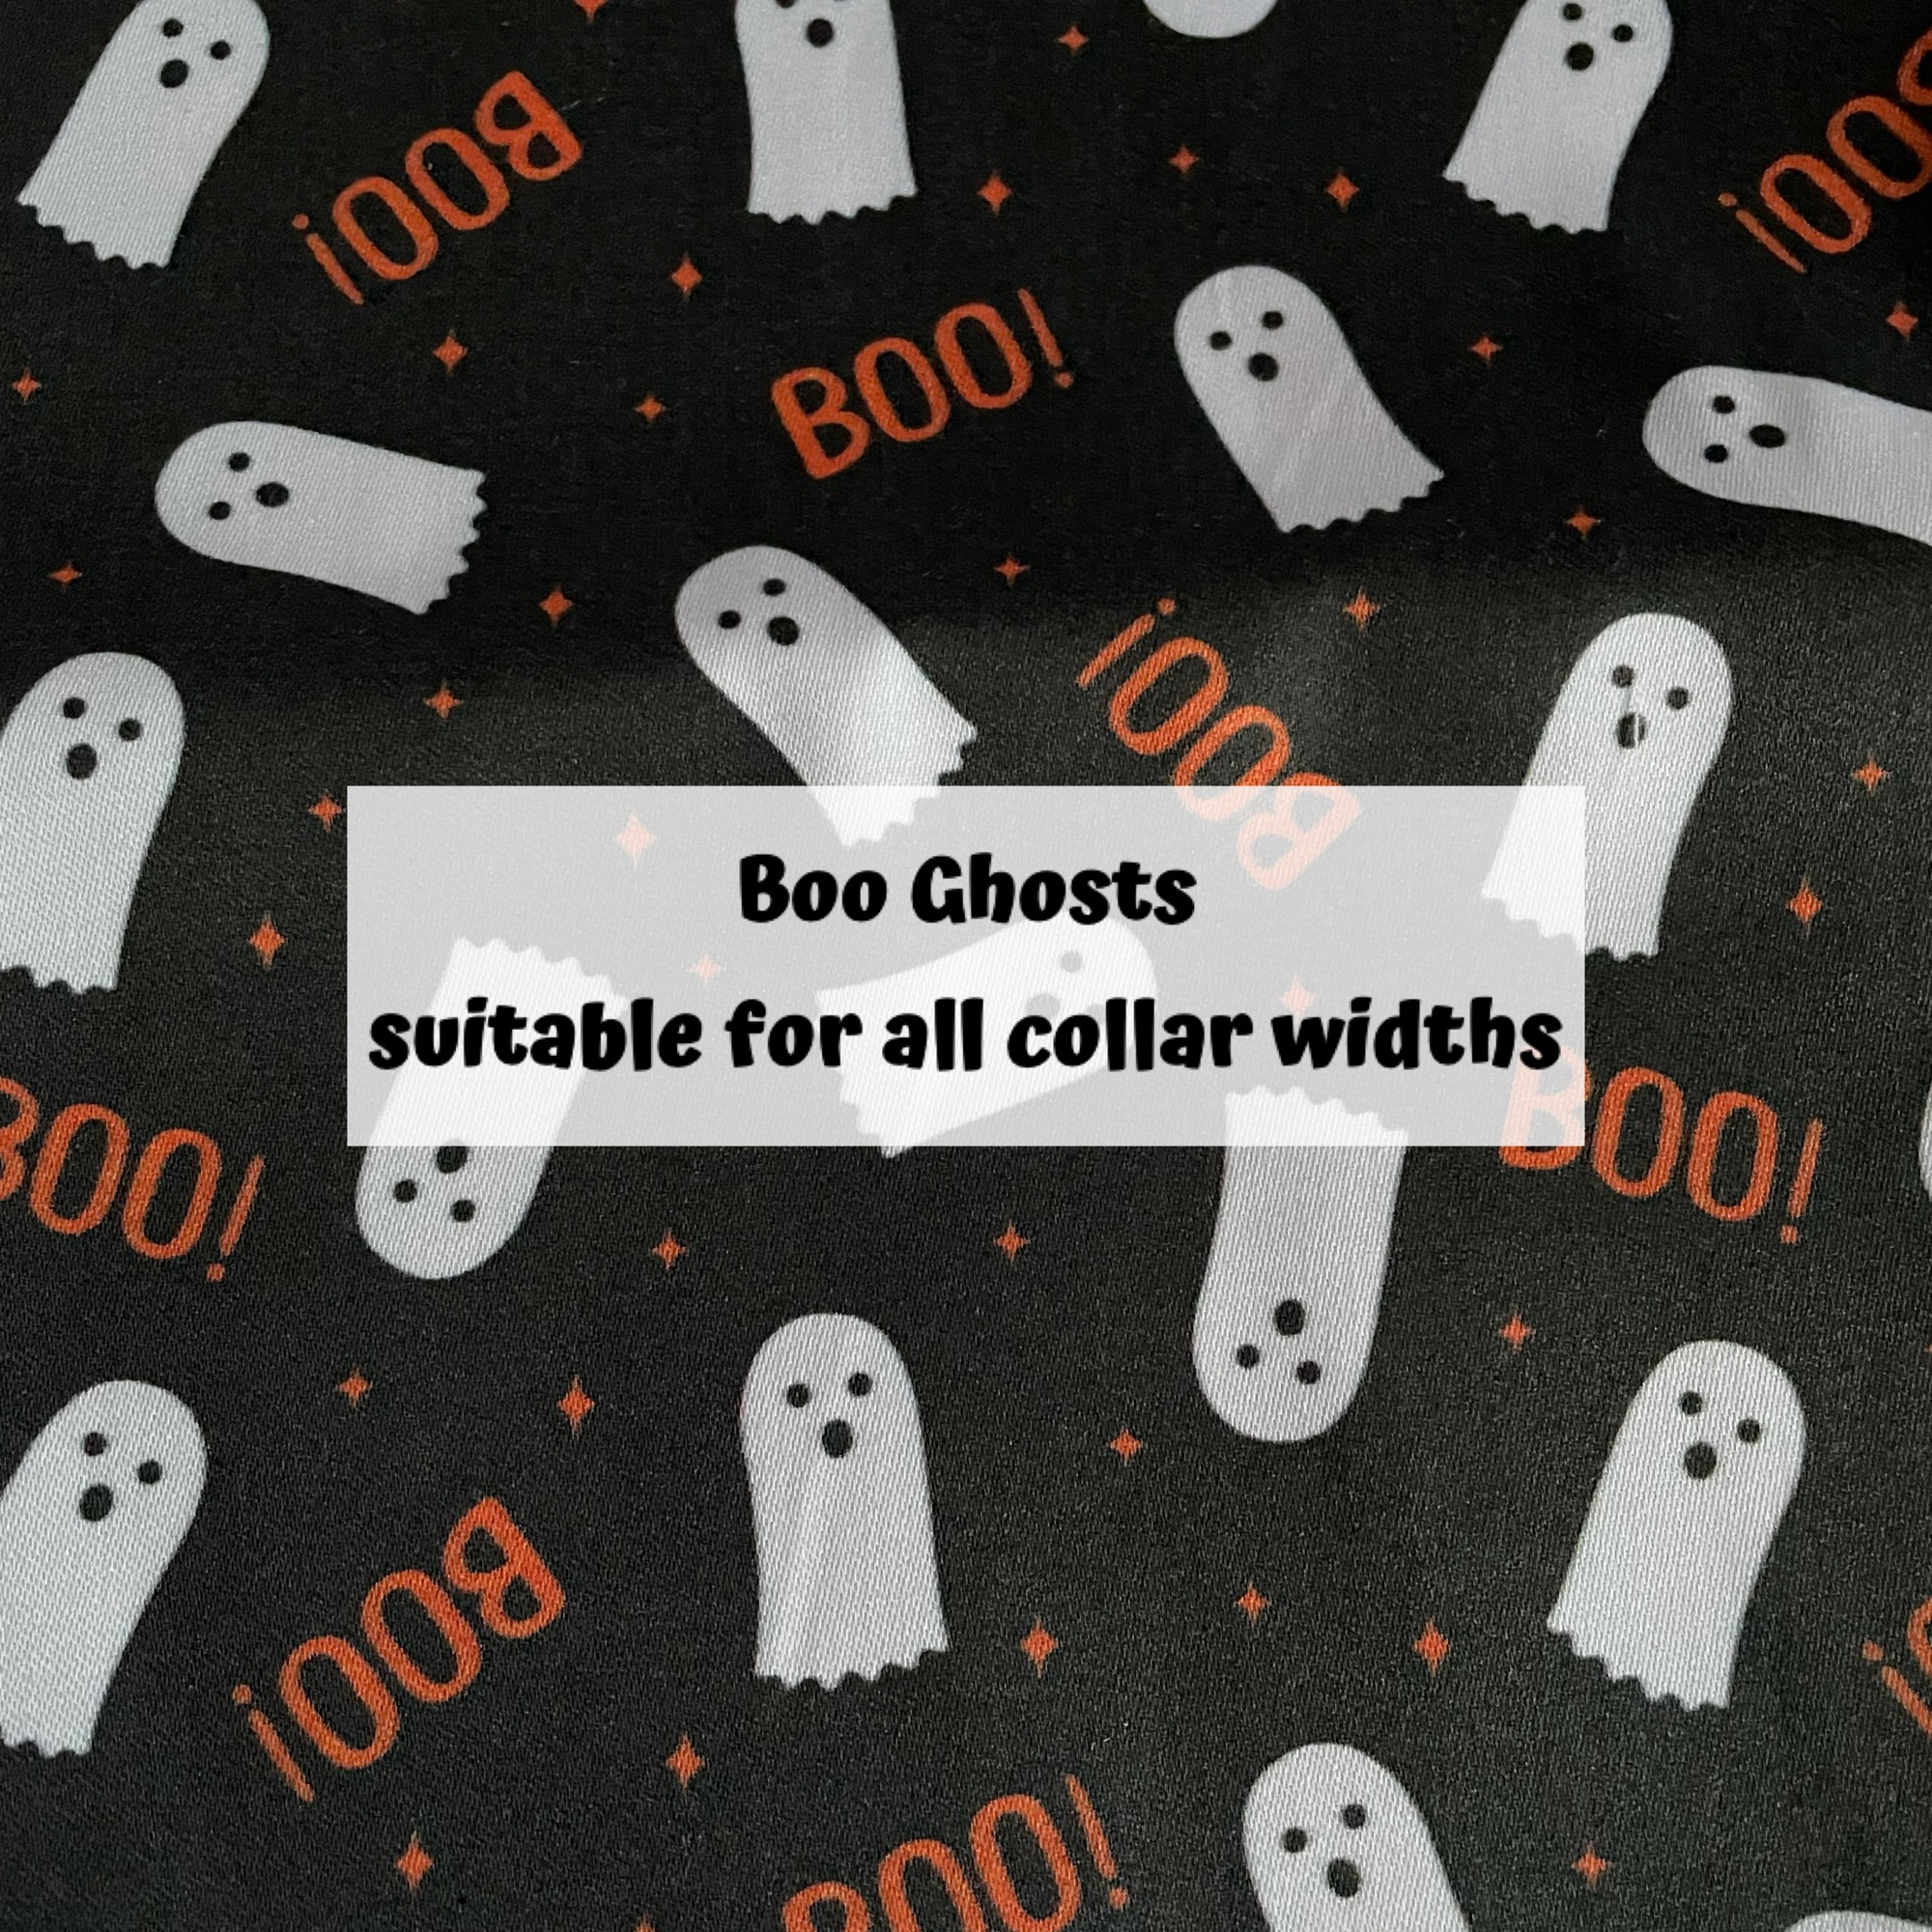 Boo Ghosts